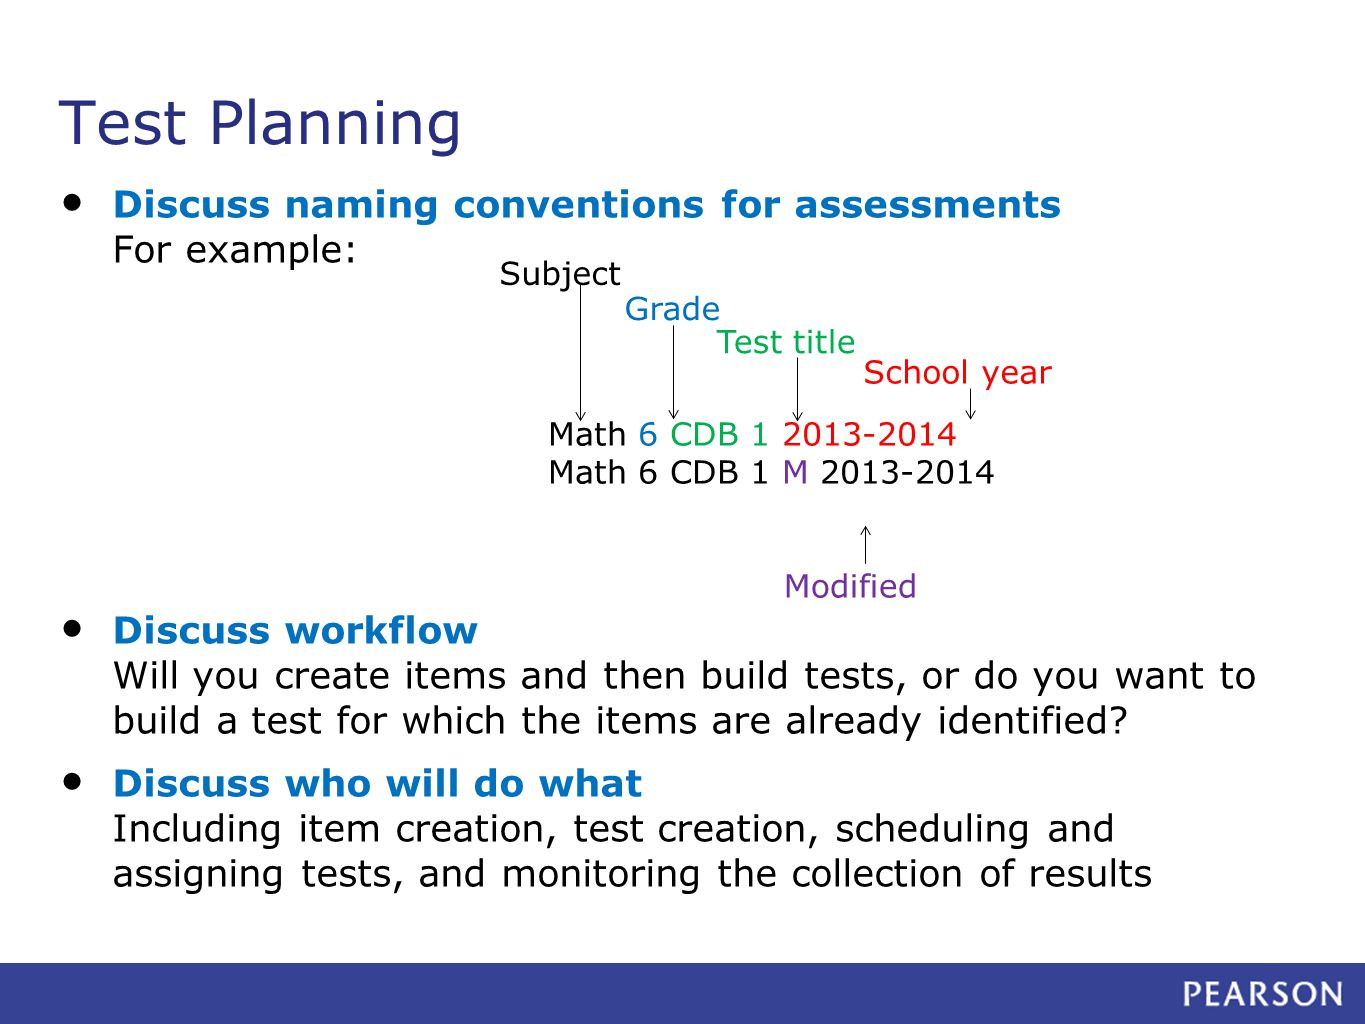 Discuss naming conventions for assessments For example: Discuss workflow Will you create items and then build tests, or do you want to build a test for which the items are already identified.